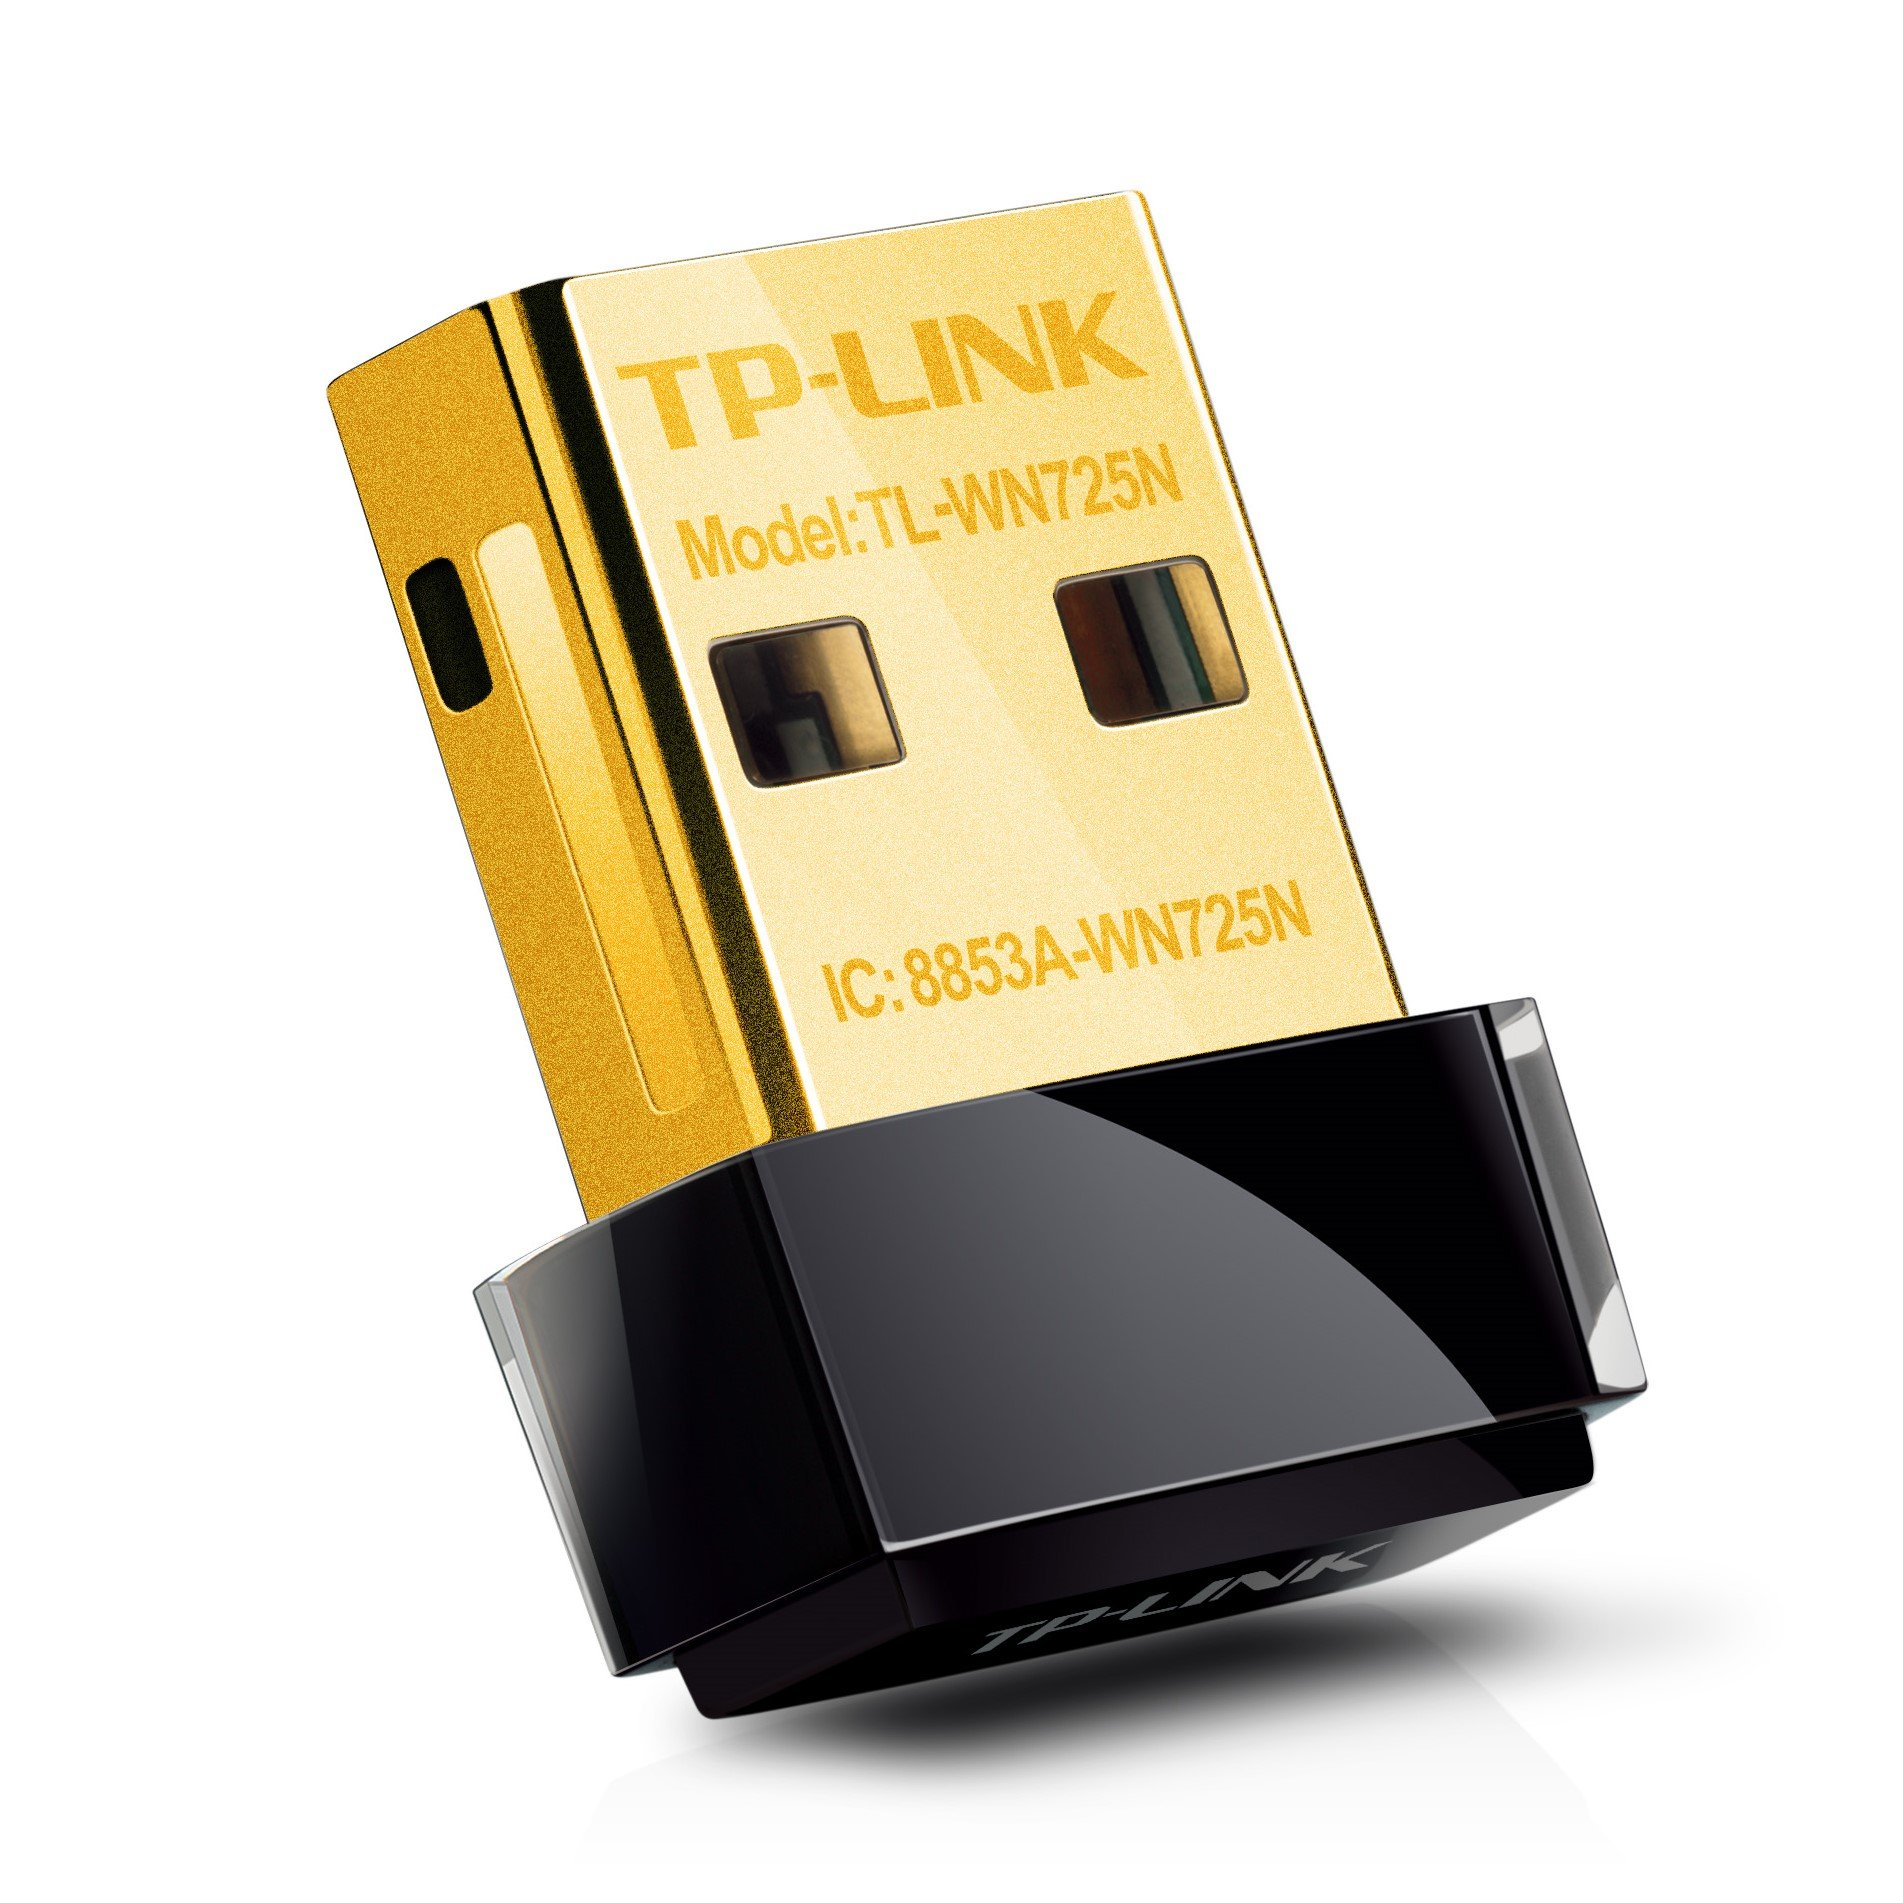 TP-Link TL-WN725N 150Mbps Wireless N Nano USB Adapter (Black) product image